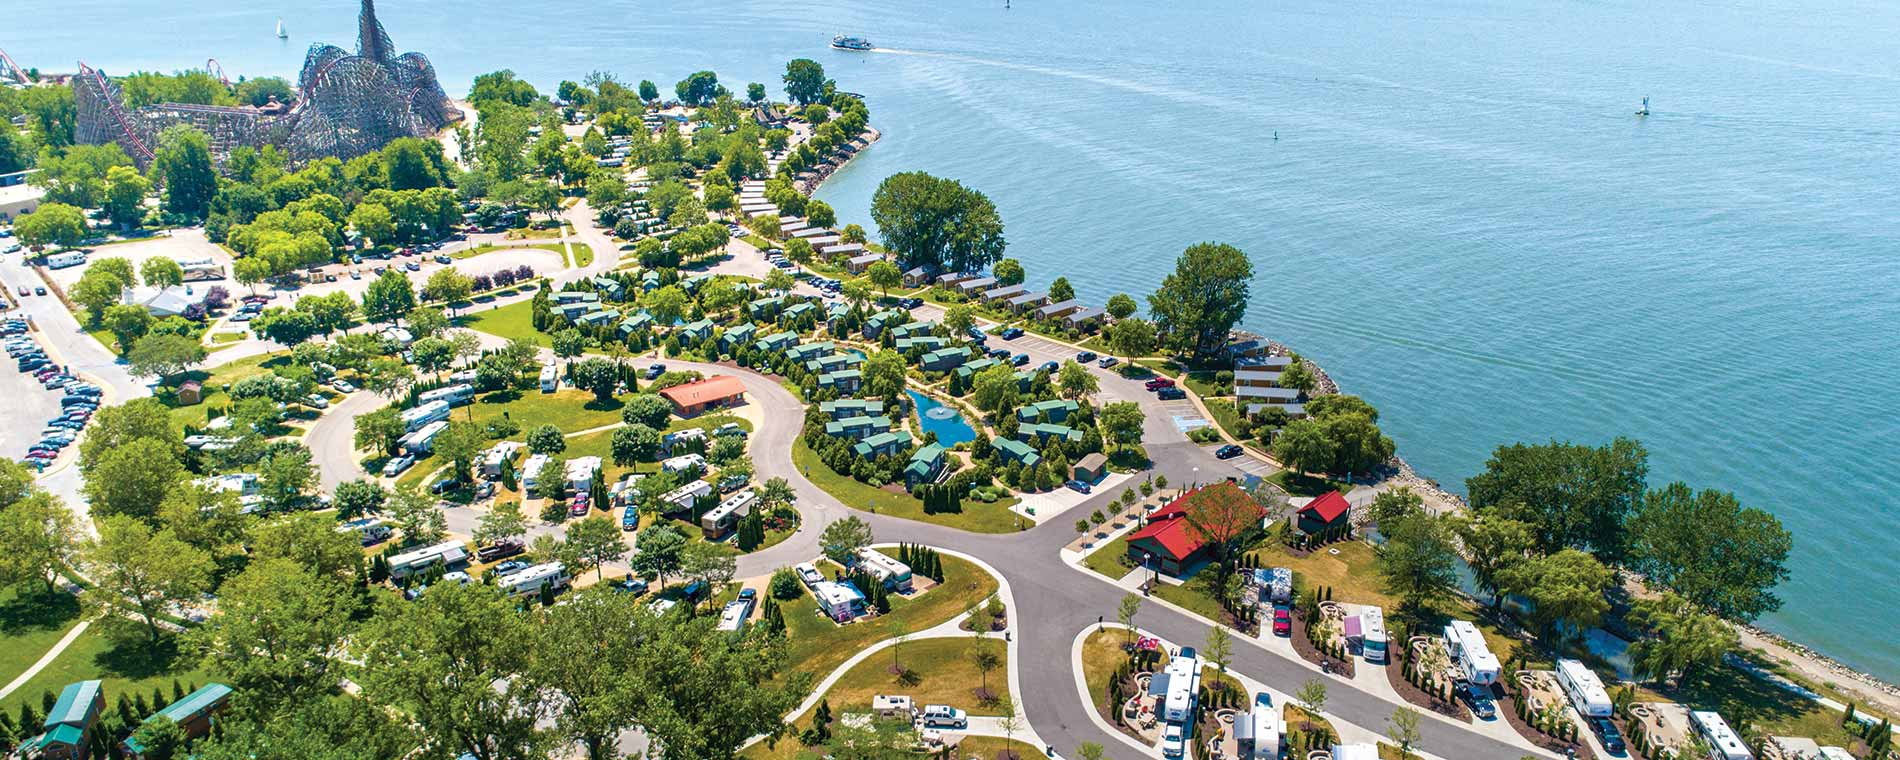 Aerial View of Luxury Camping Experience at Lighthouse Point